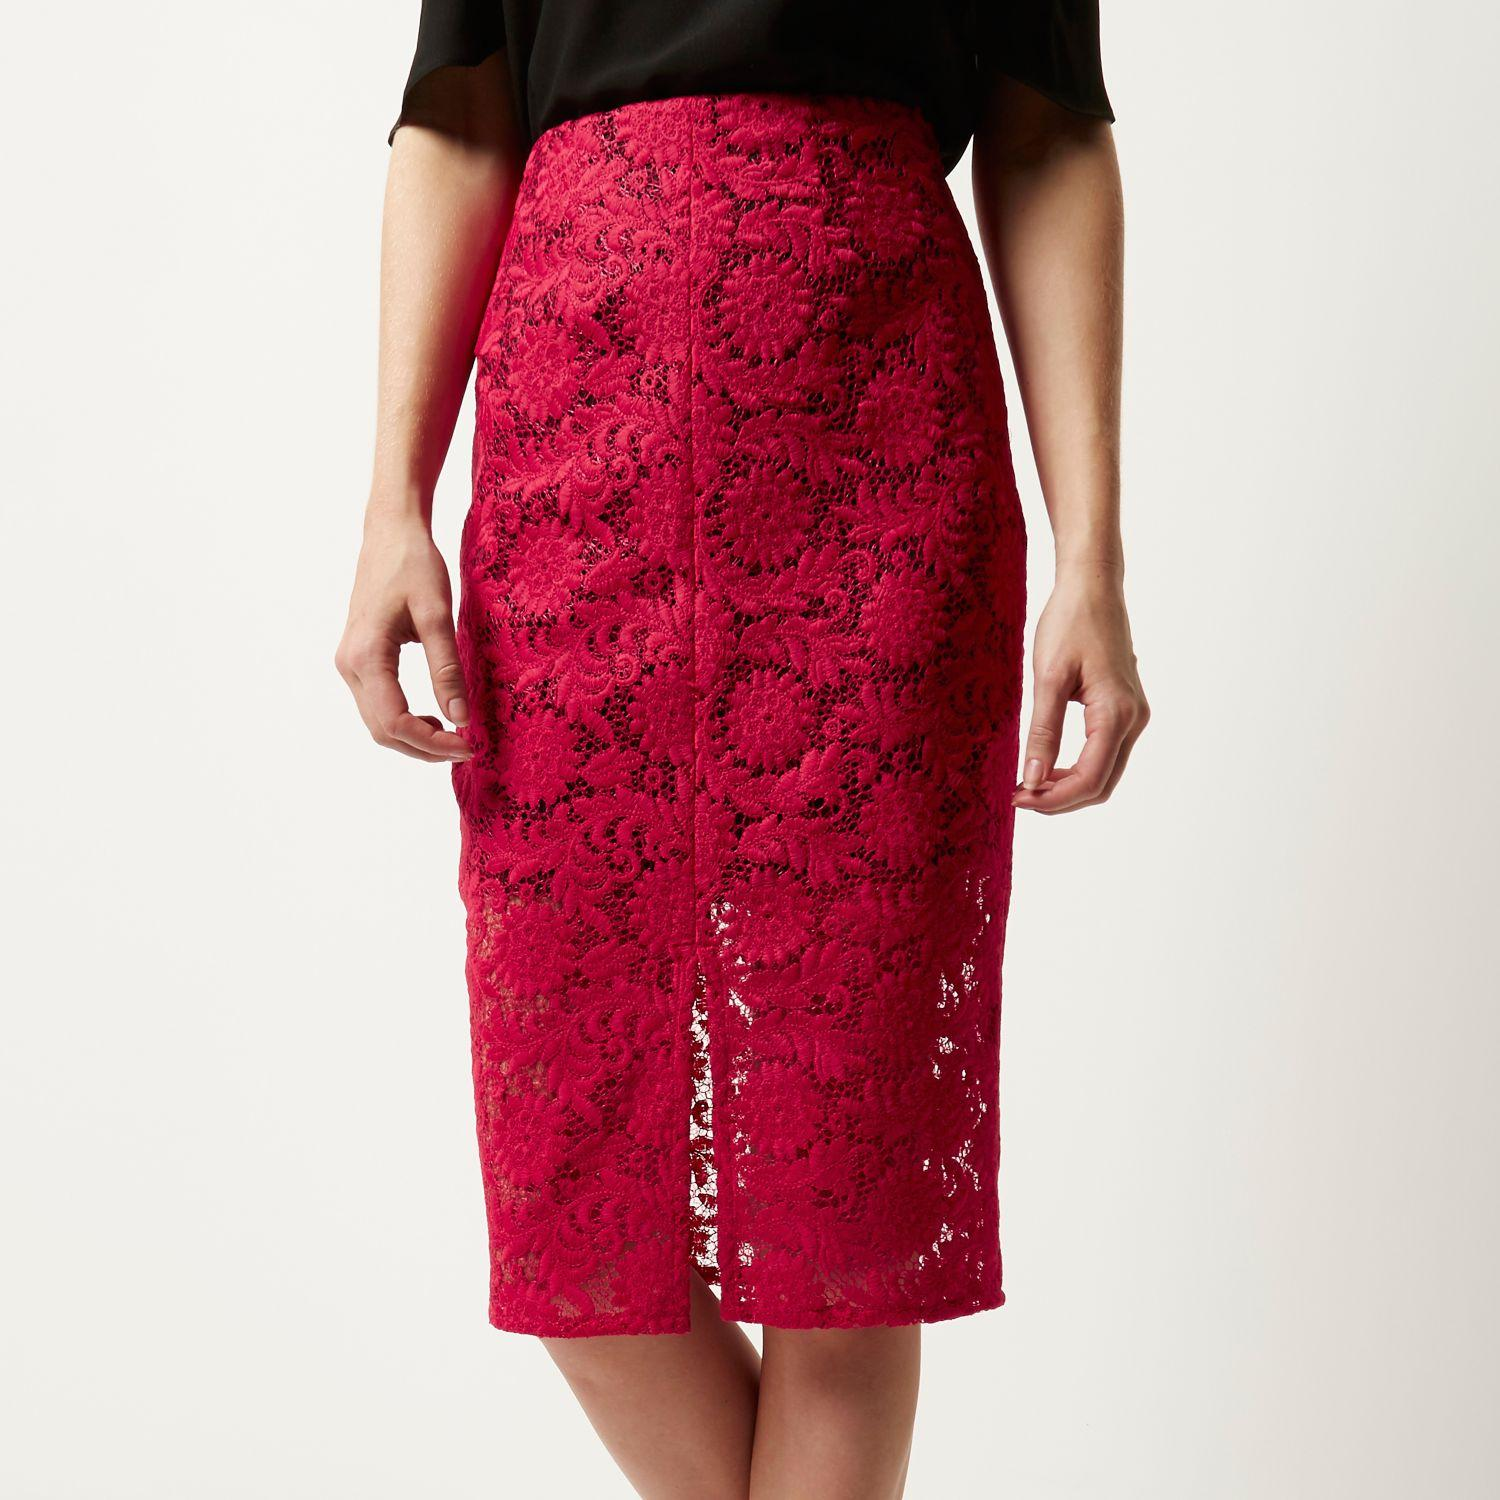 Lyst - River Island Pink Lace Pencil Skirt in Red